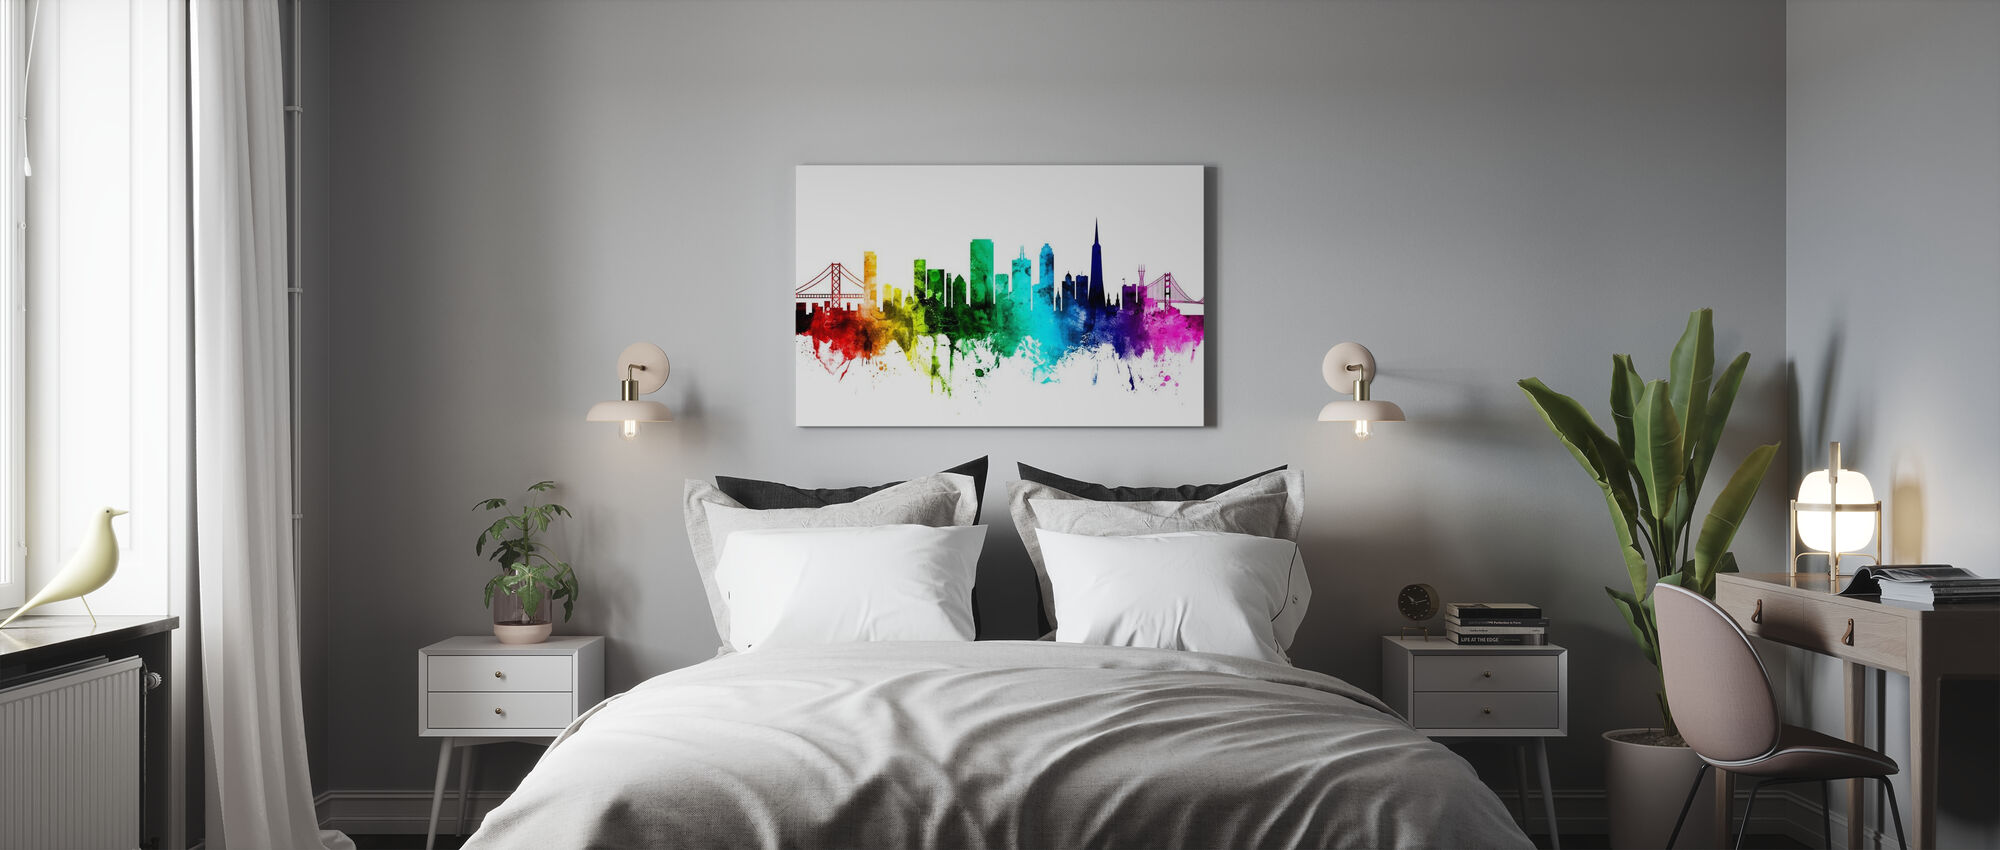 San Francisco City Skyline Rainbow - Canvas print - Bedroom